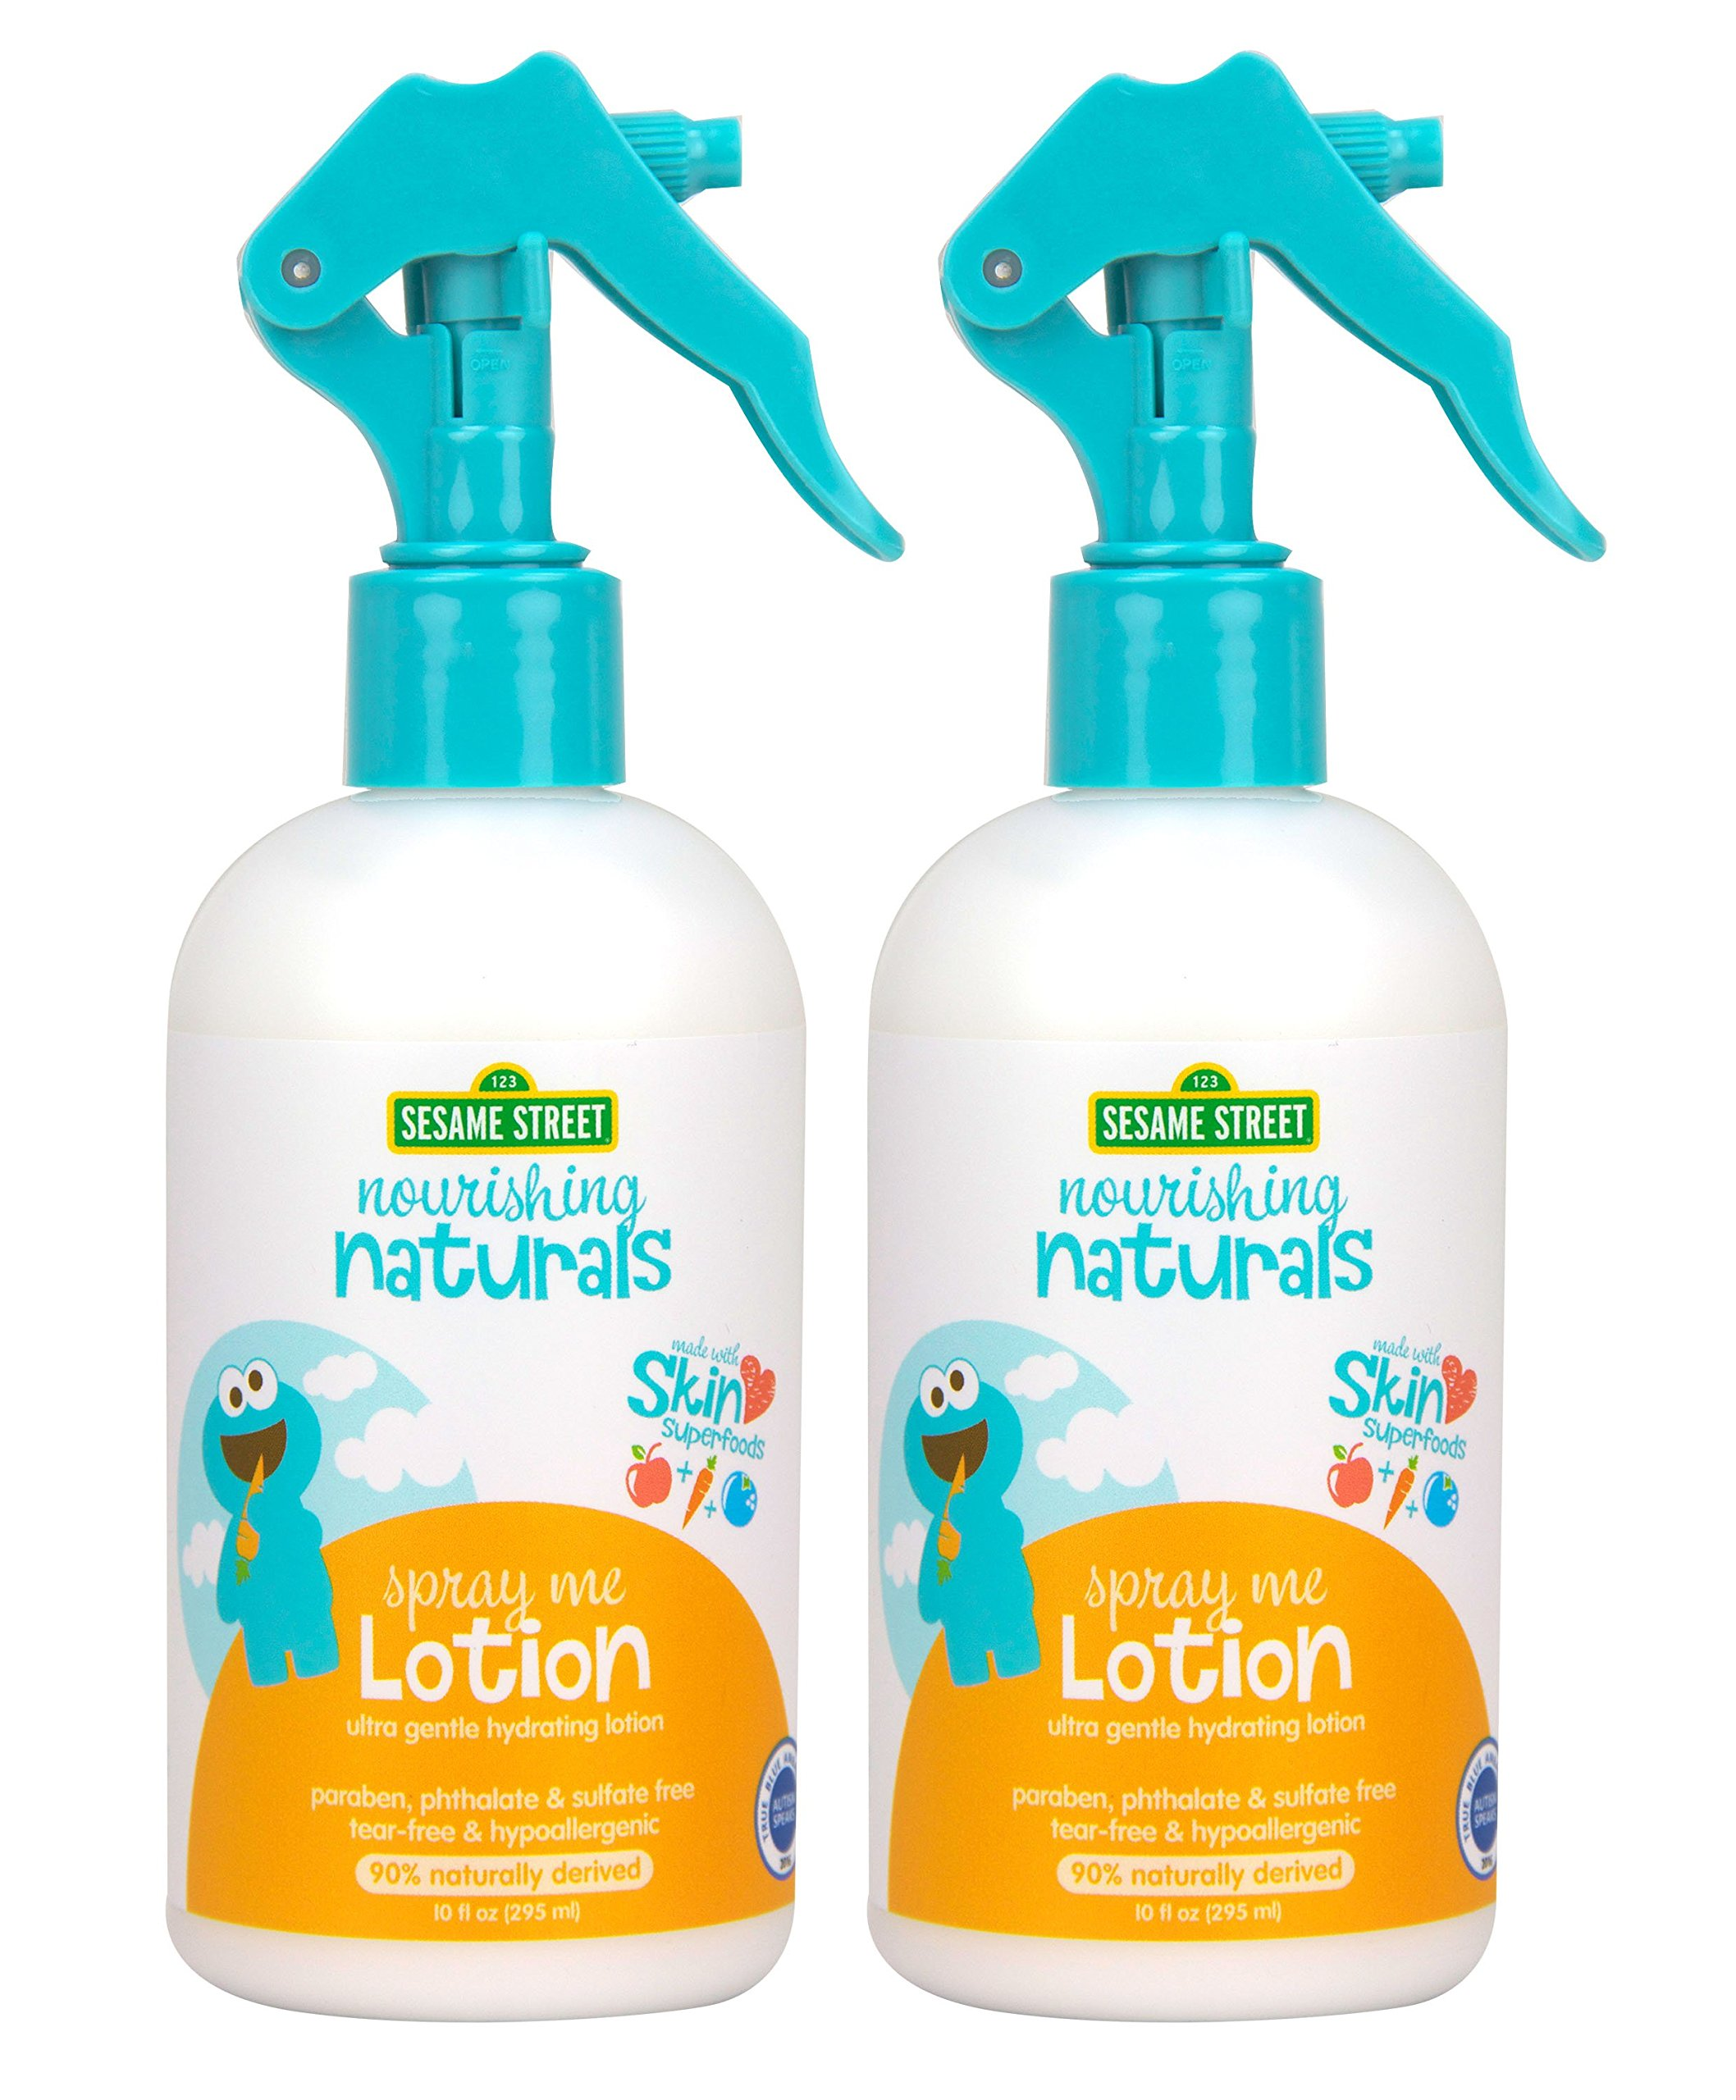 Sesame Street Nourishing Naturals Spray Lotion 10 oz 2 Pack